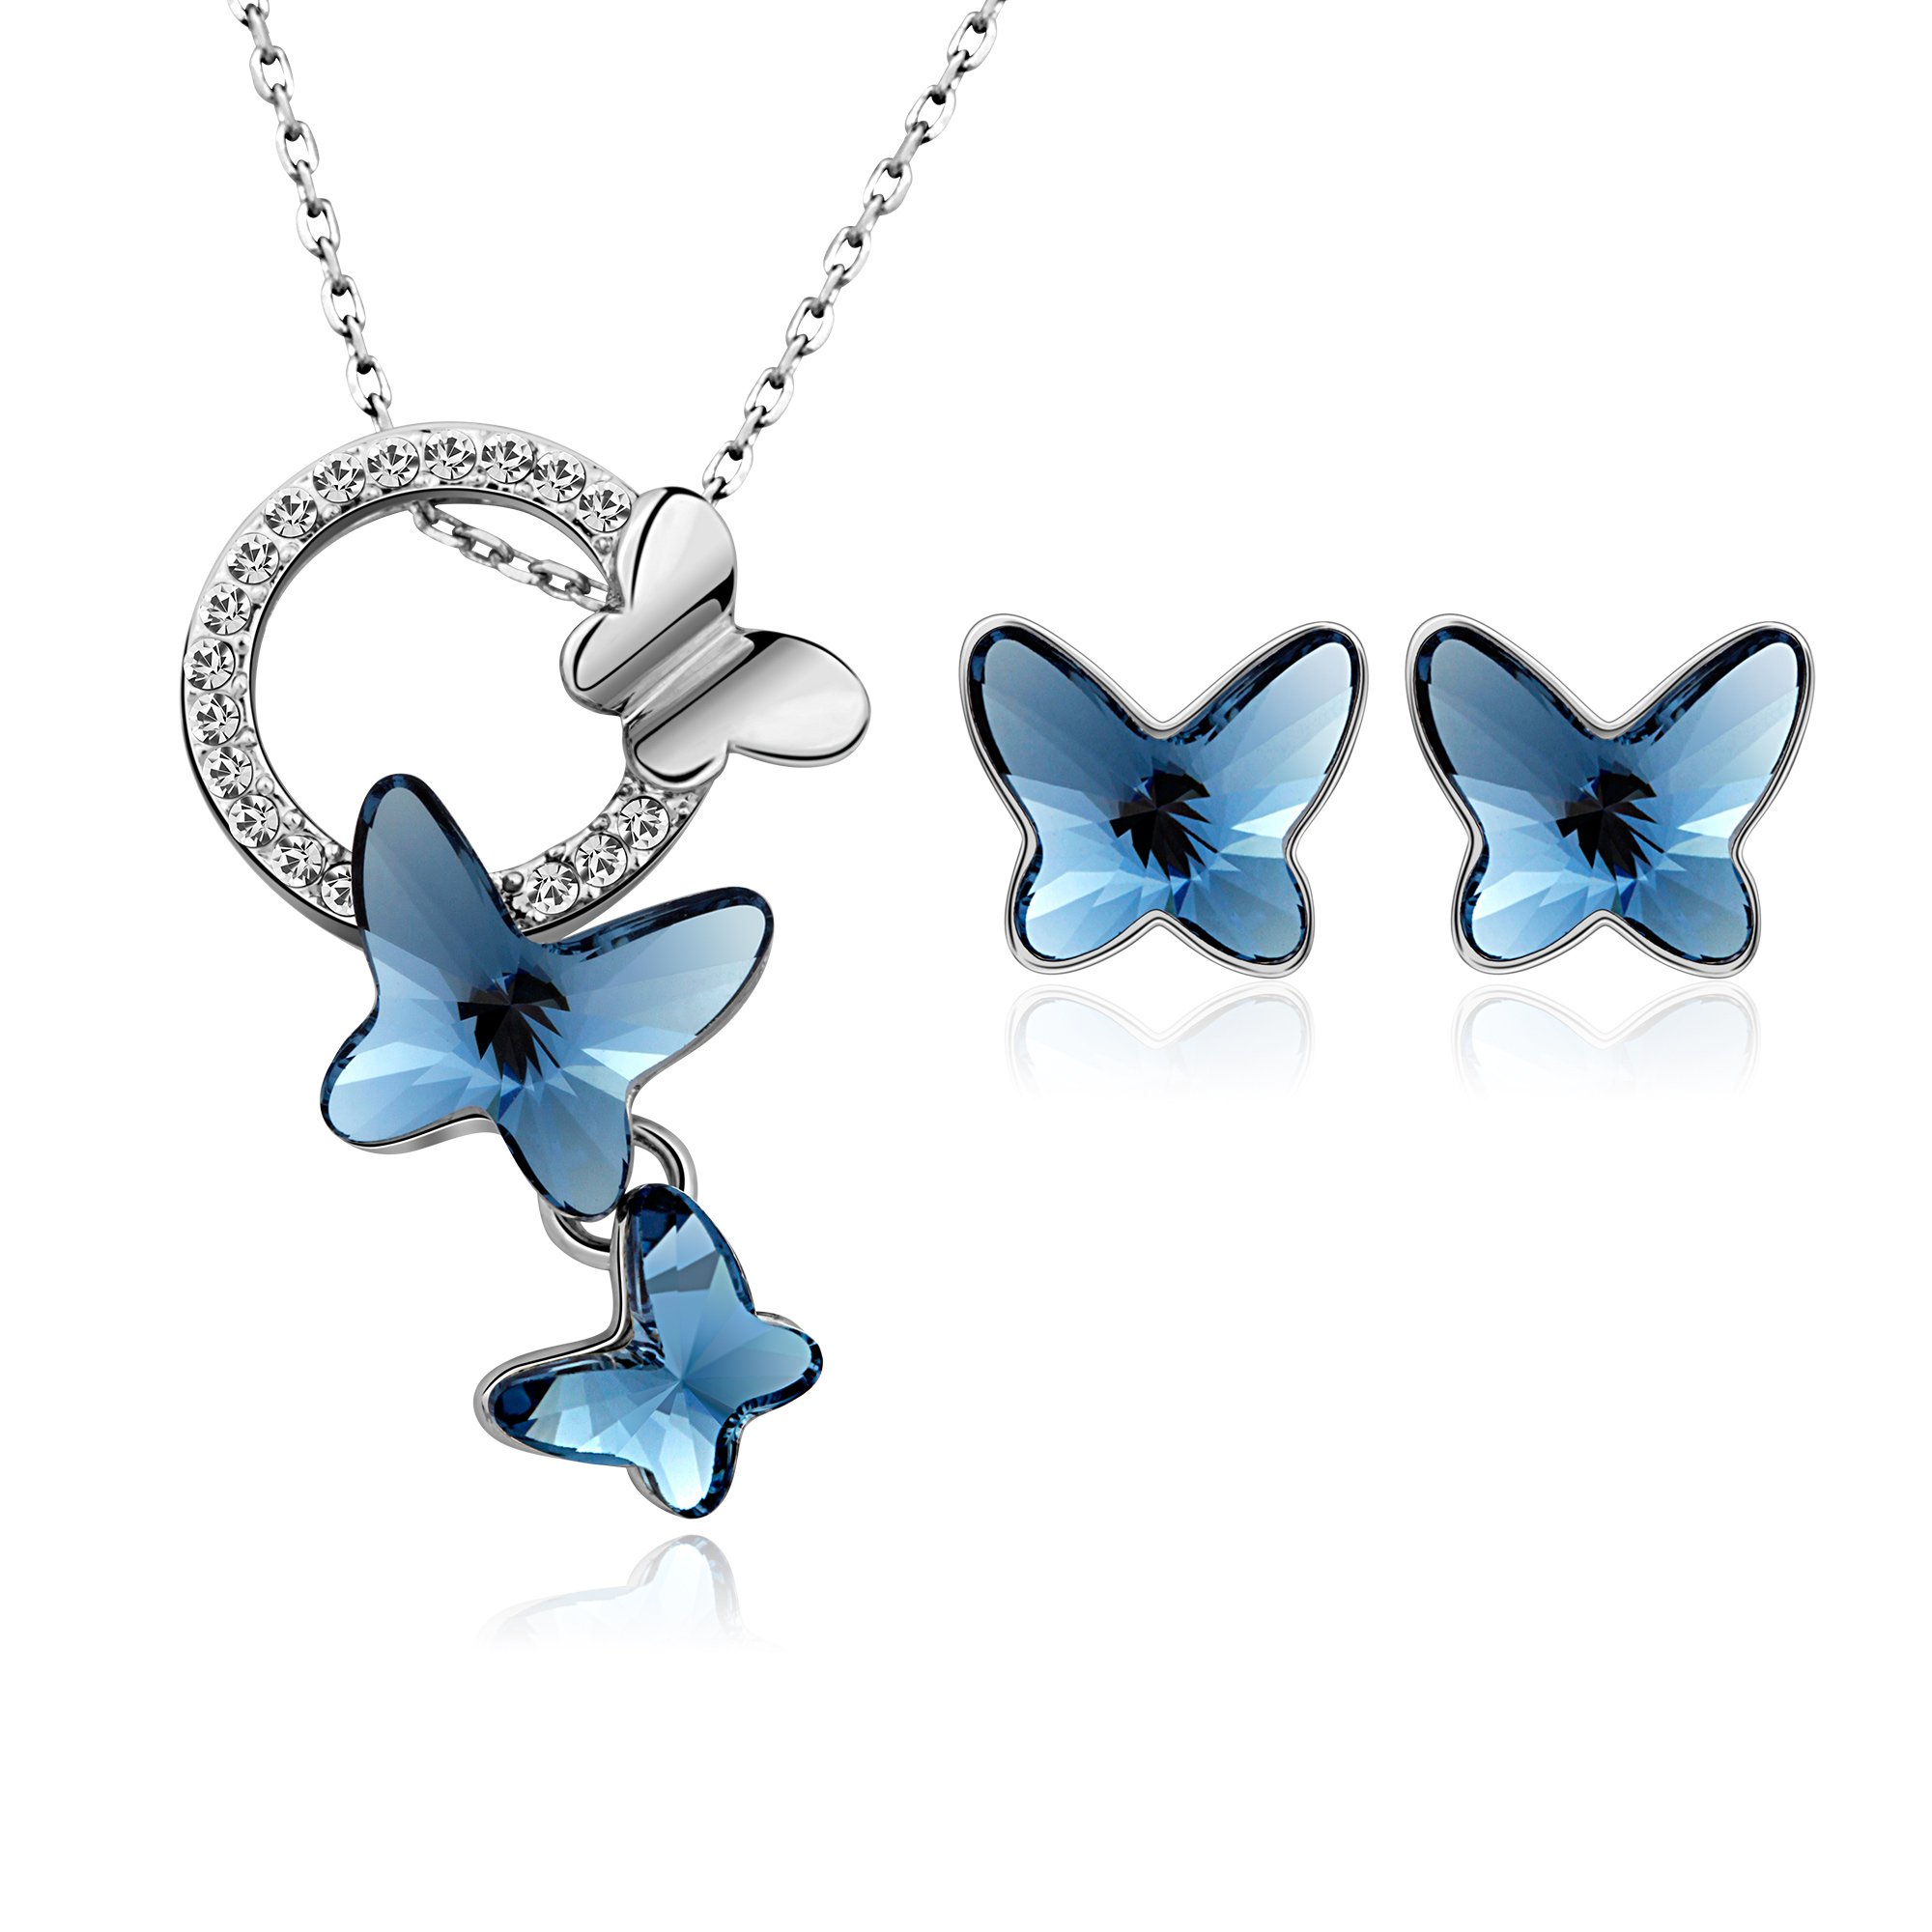 T400 Blue Butterfly Jewelry Sets Dream Chasers Pendant Necklace and Stud Earrings Made with Swarovski Crystals Love Gift